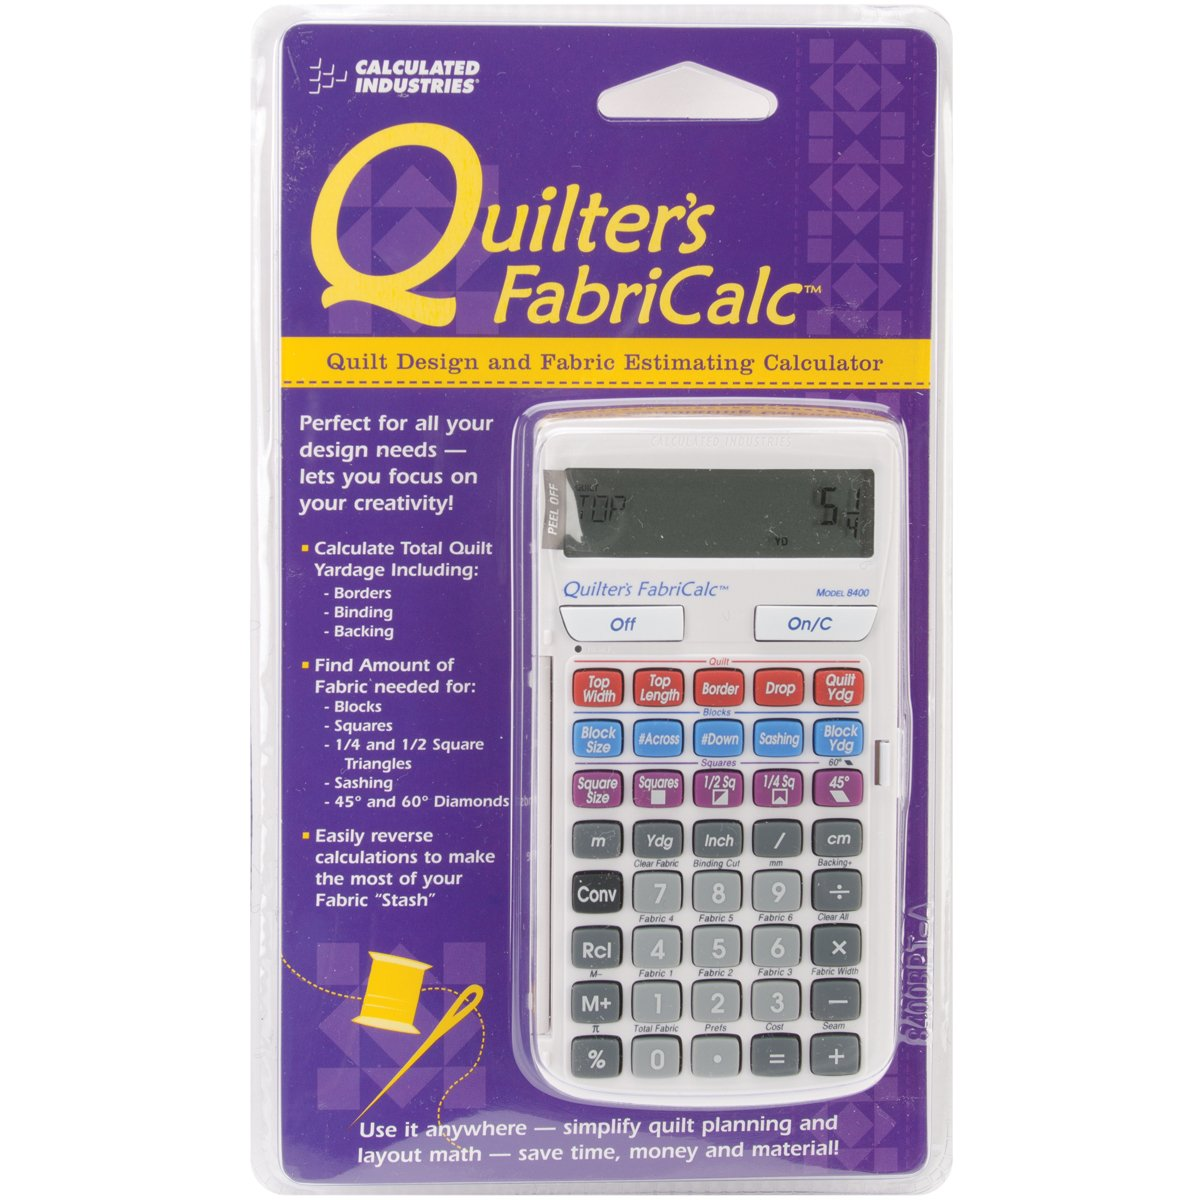 Calculated Industries Quilter's FabriCalc Quilt Design and Fabric Estimating Calculator by Calculated Industries